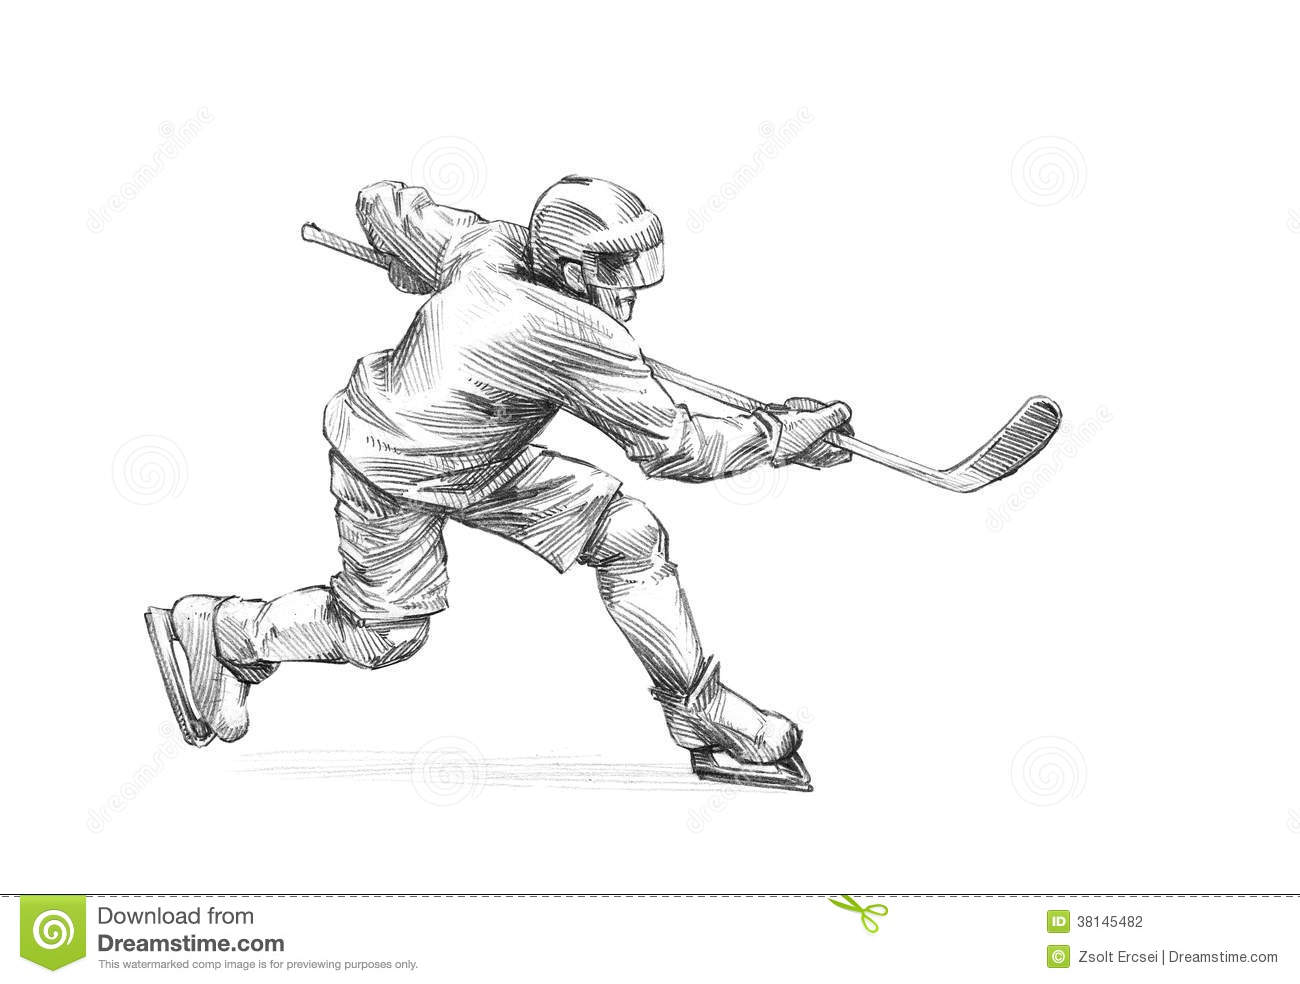 ice hockey player drawing hand drawn sketch pencil illustration of an ice hockey ice drawing player hockey